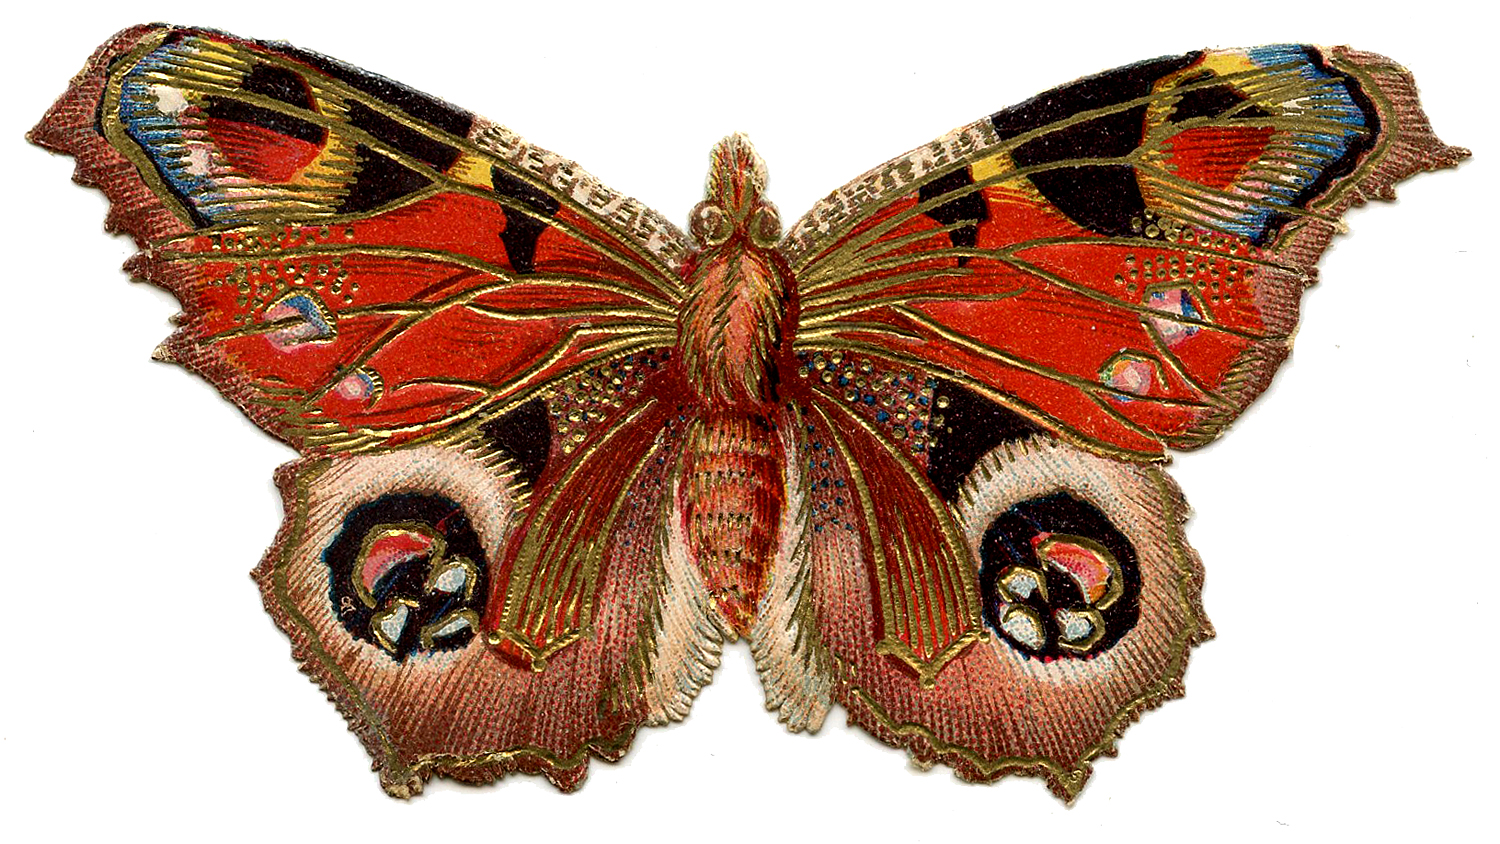 Butterflies For Sale - Butterfly Pict - photo#35